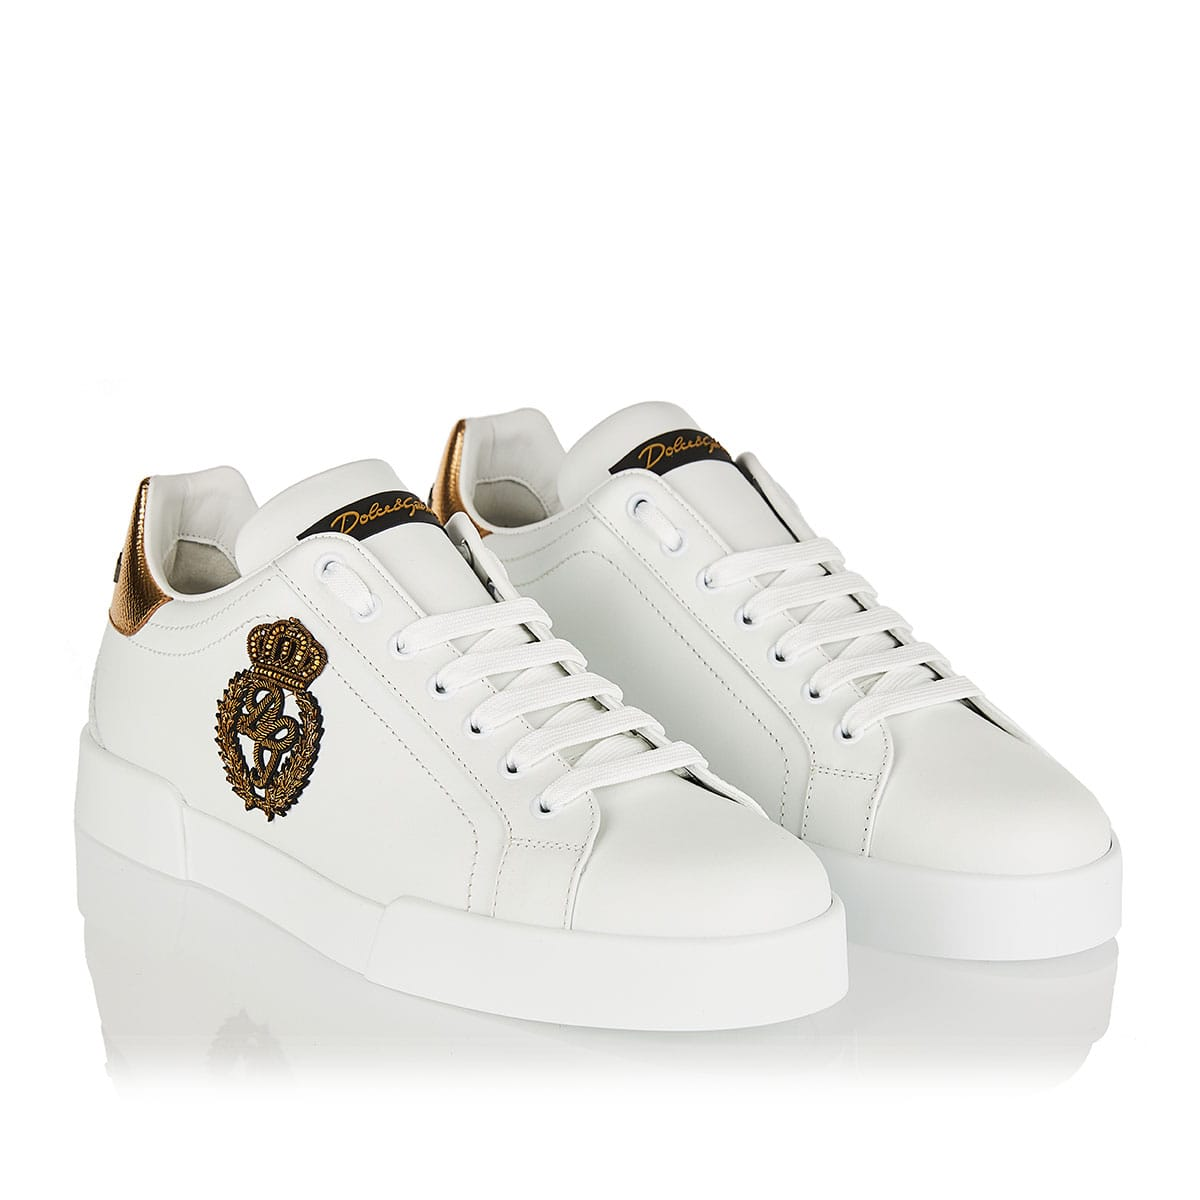 Portofino crown embellished sneakers